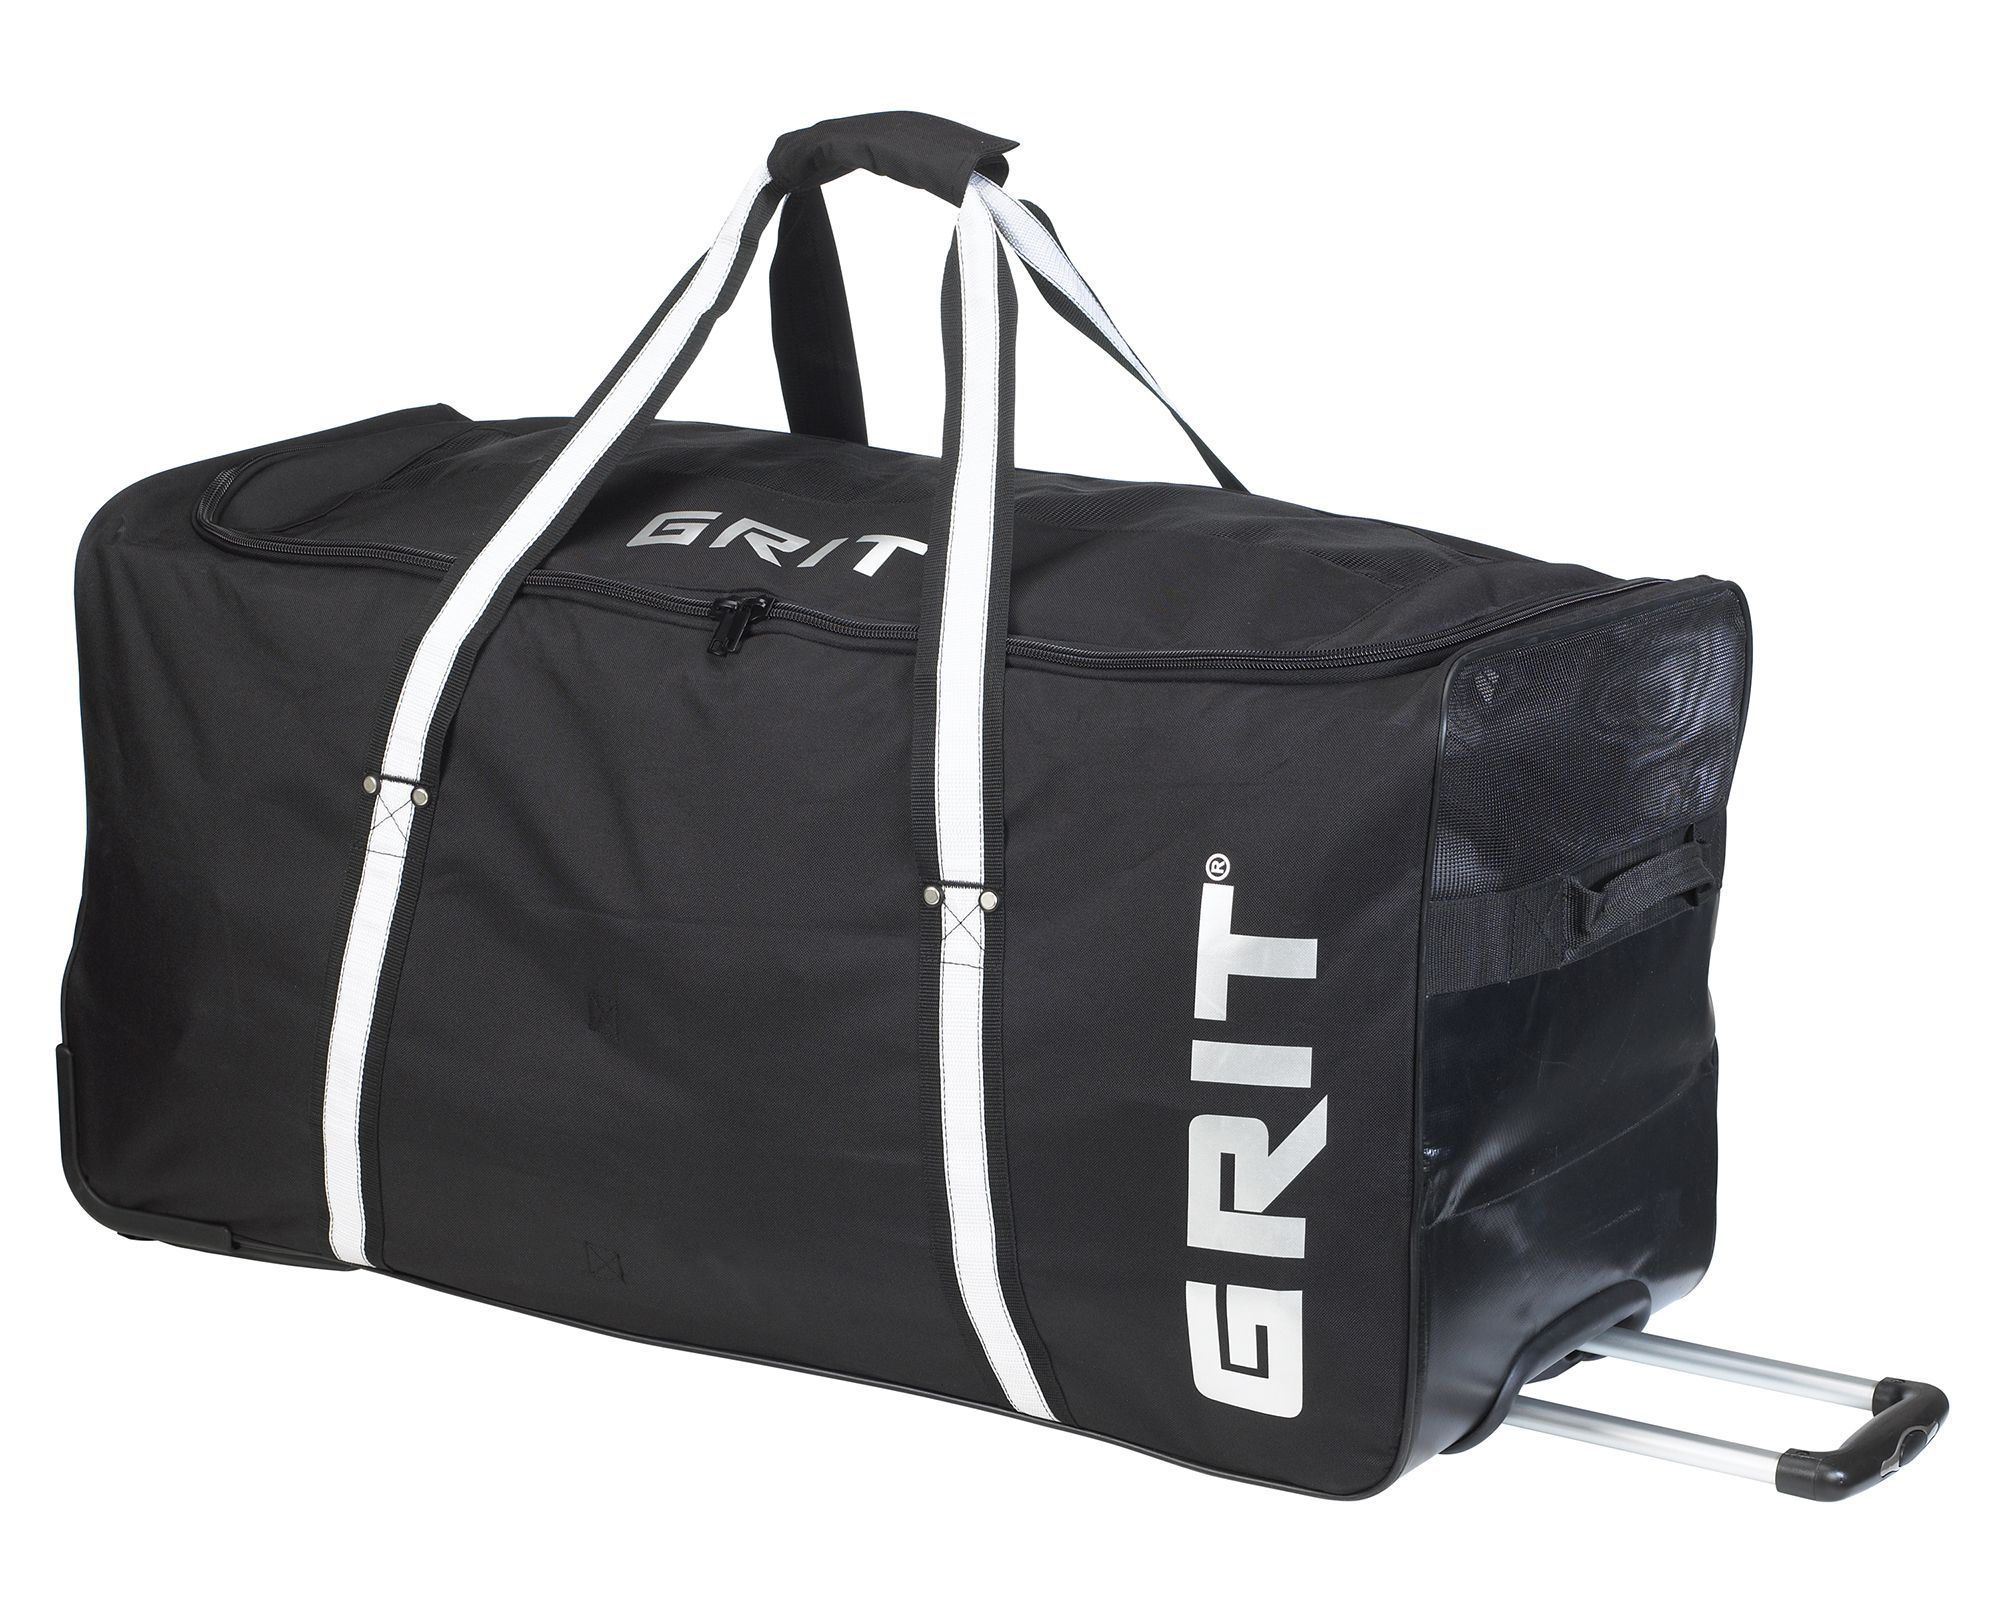 Grit Hx1 36a Hockey Wheel Bag Bags Hockey Sports Equipment